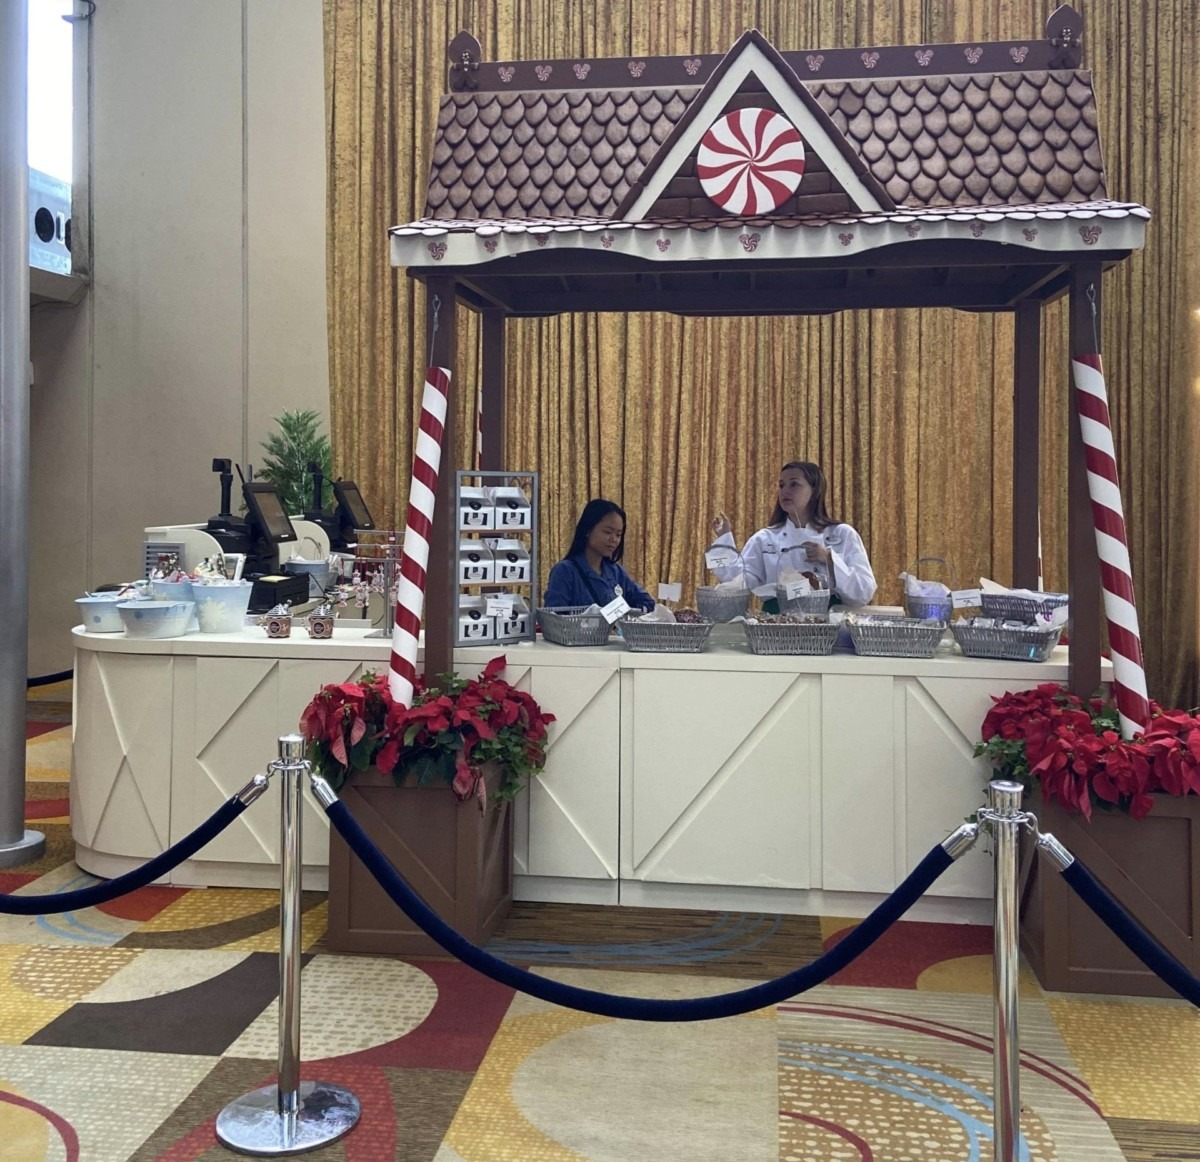 The Gingerbread Display is up at Disney's Contemporary Resort! #disneyholidays 4